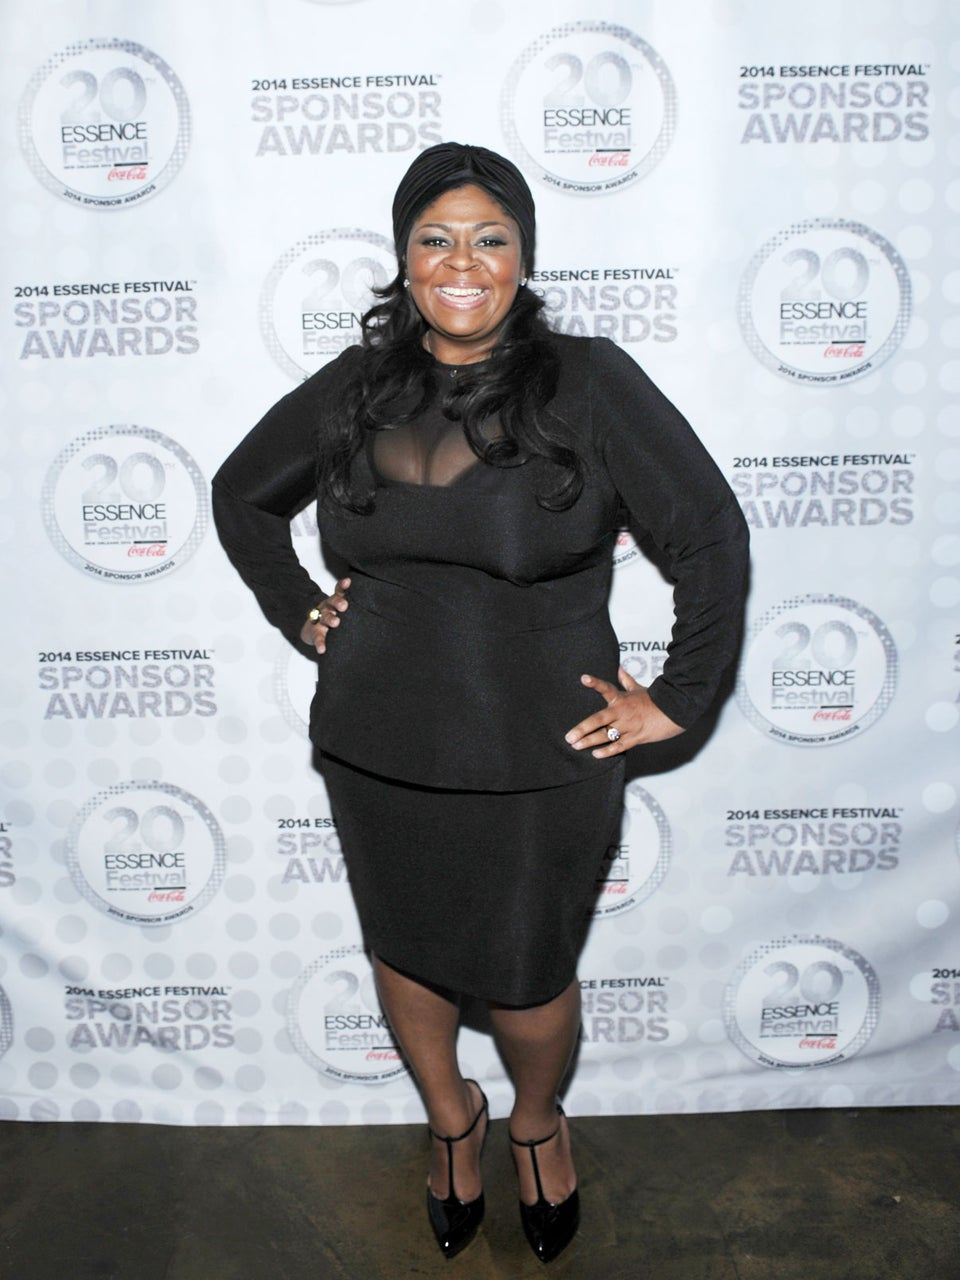 #WEW: Kim Burrell, Your Favorite Singer's Musical Inspiration